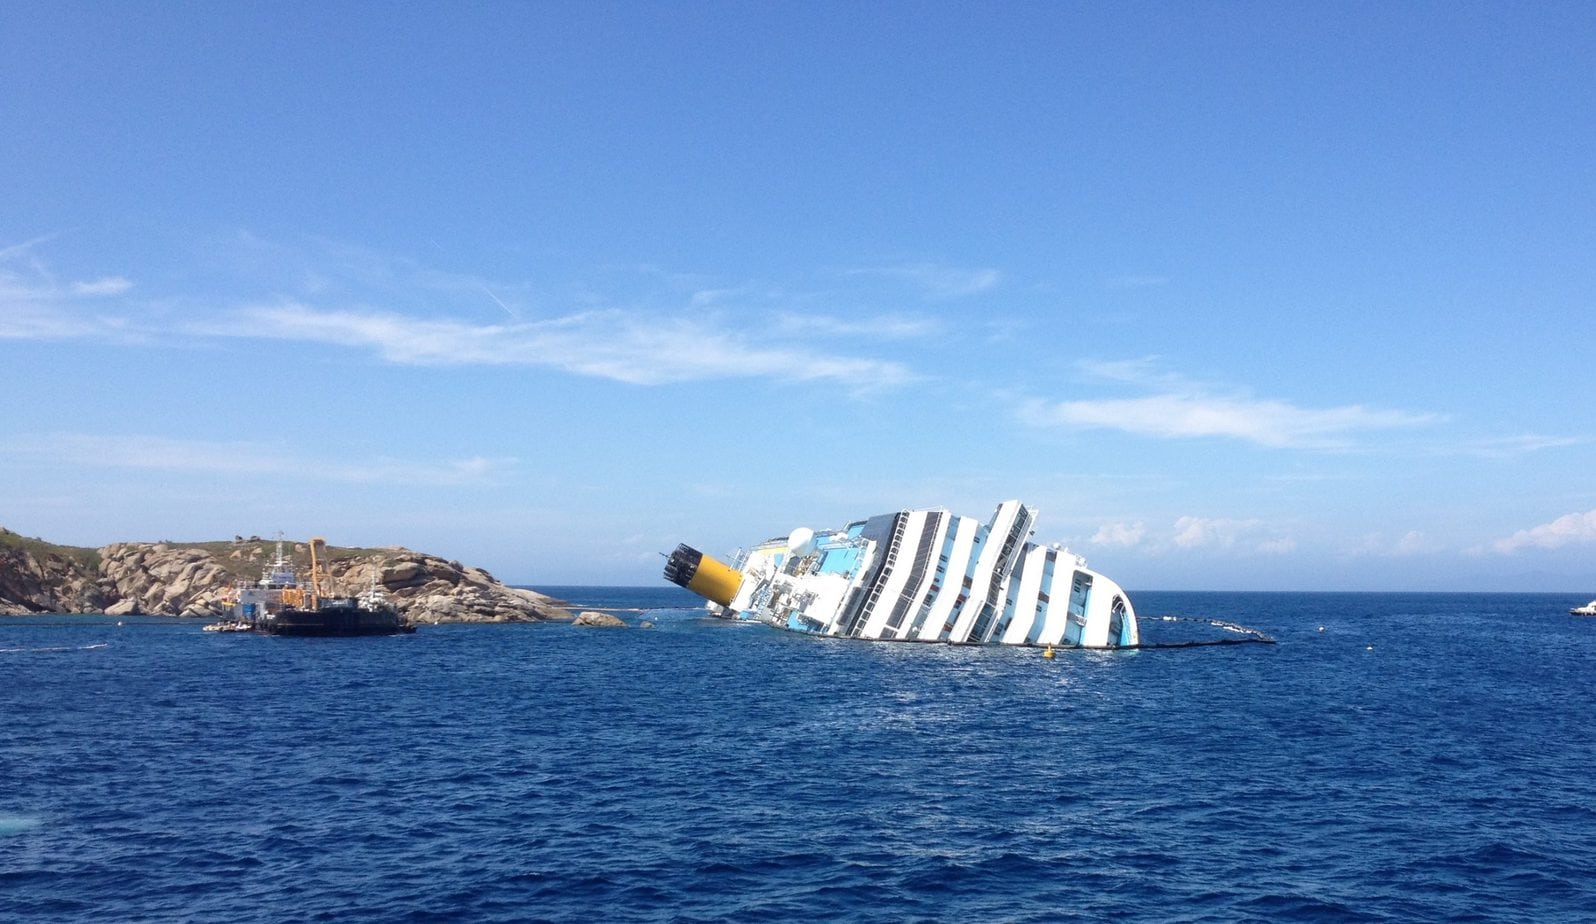 What Happened to The Captain of The Costa Concordia? – Conviction and Sentence